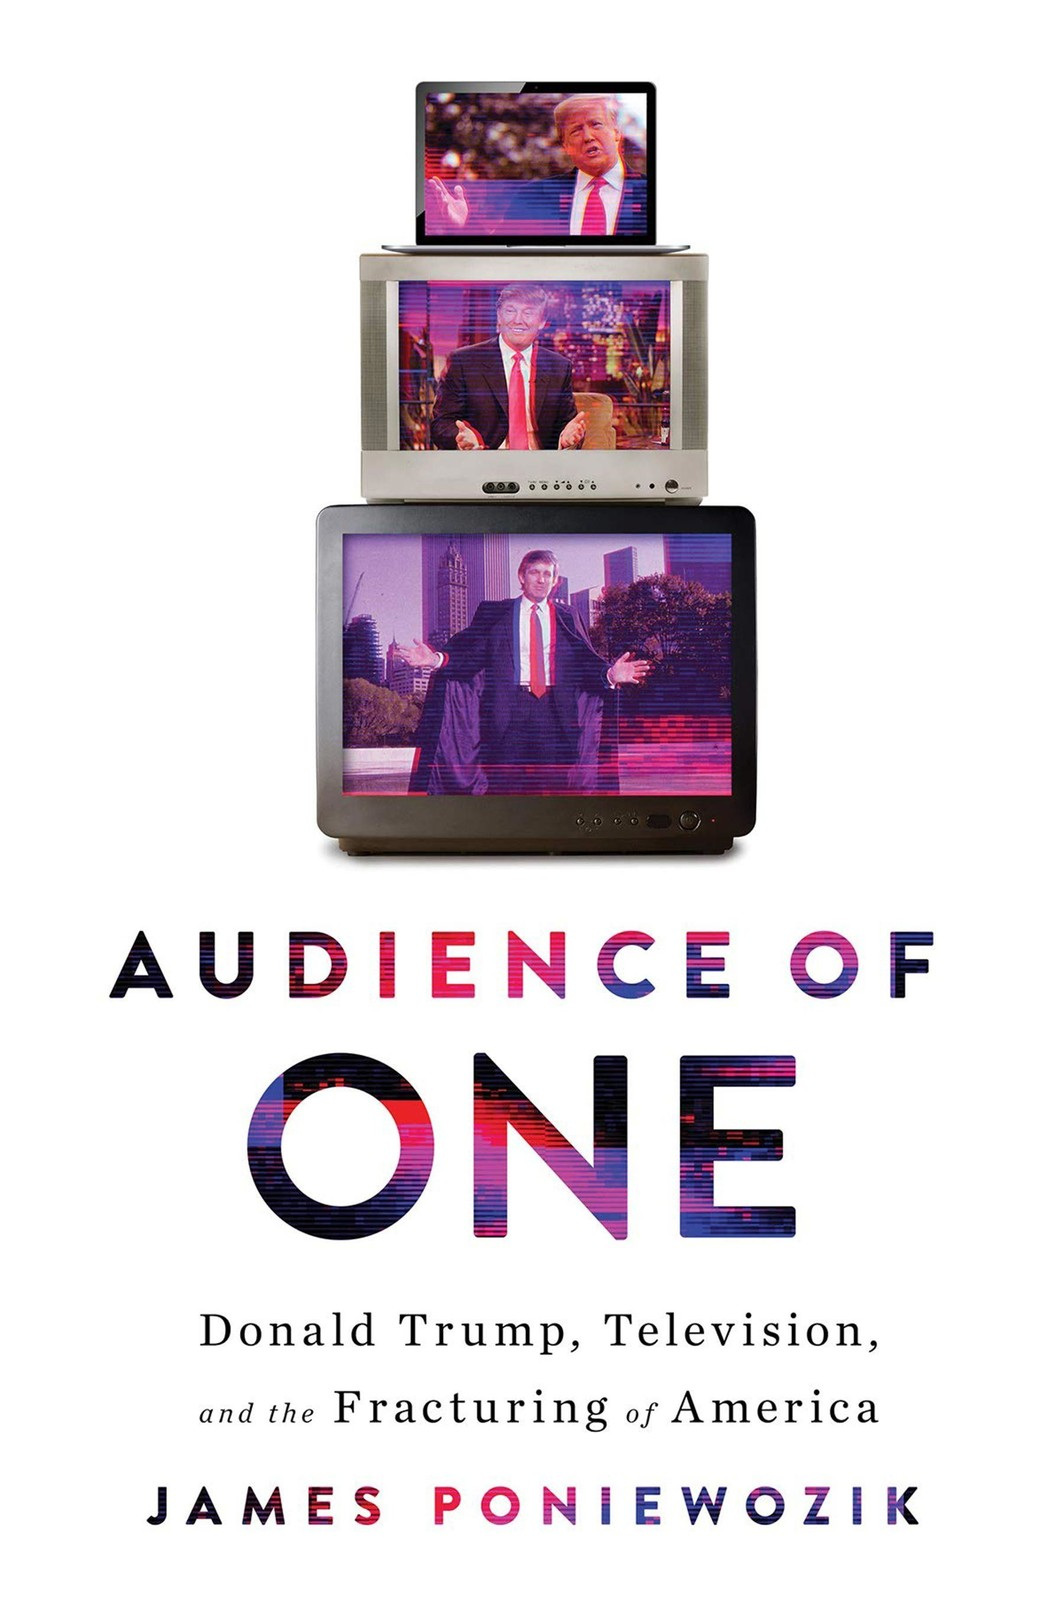 The cover of Audience of One: Donald Trump, Television, and the Fracturing of America